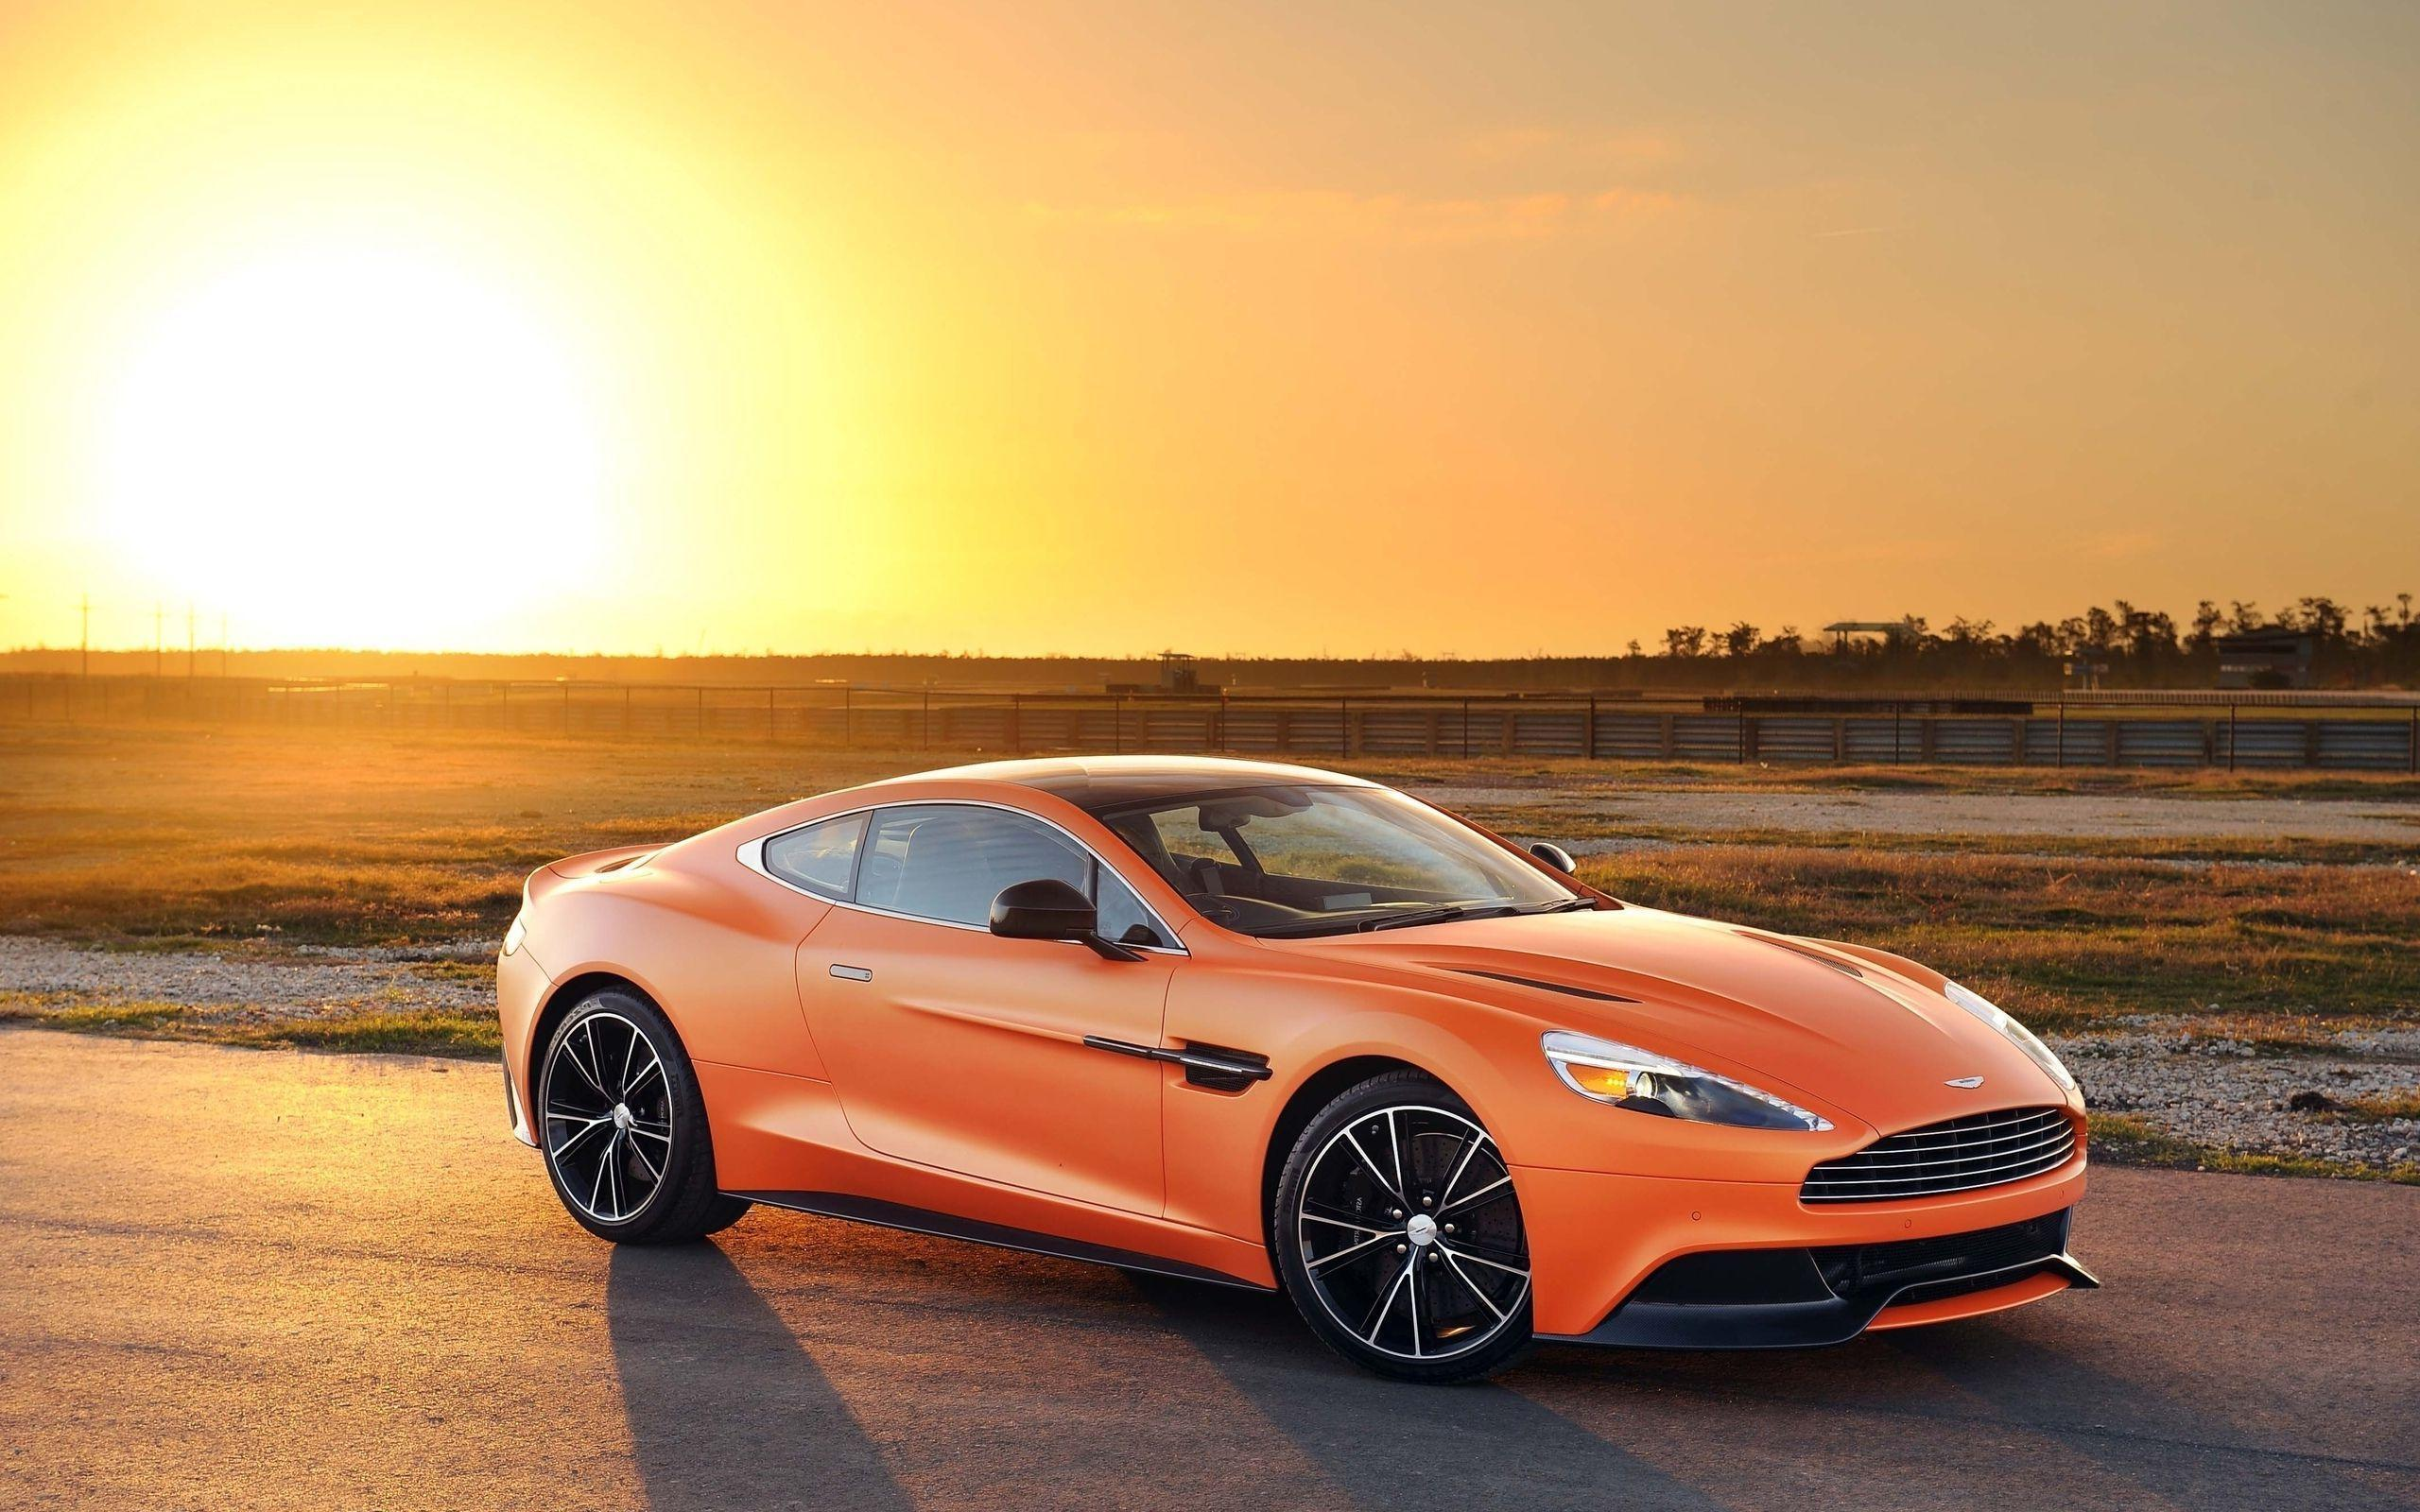 Blue Aston Martin Vanquish On Road wallpaper_other_health